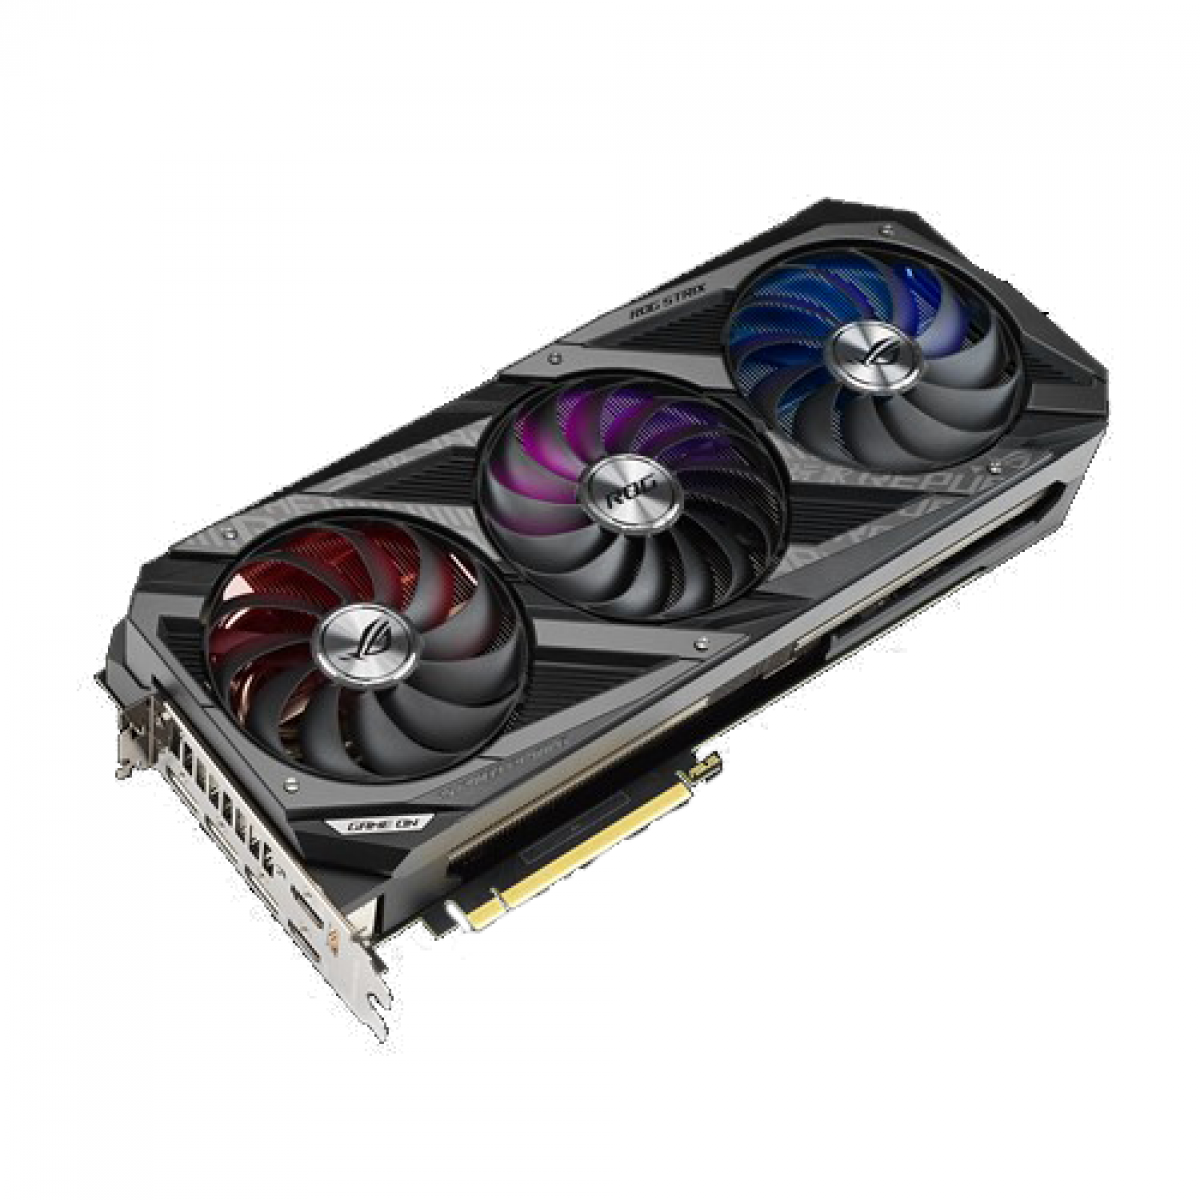 Placa de Vídeo Asus ROG Strix Geforce, RTX 3090, 24GB, GDDR6X, 384bit, ROG-STRIX-RTX3090-24G-GAMING